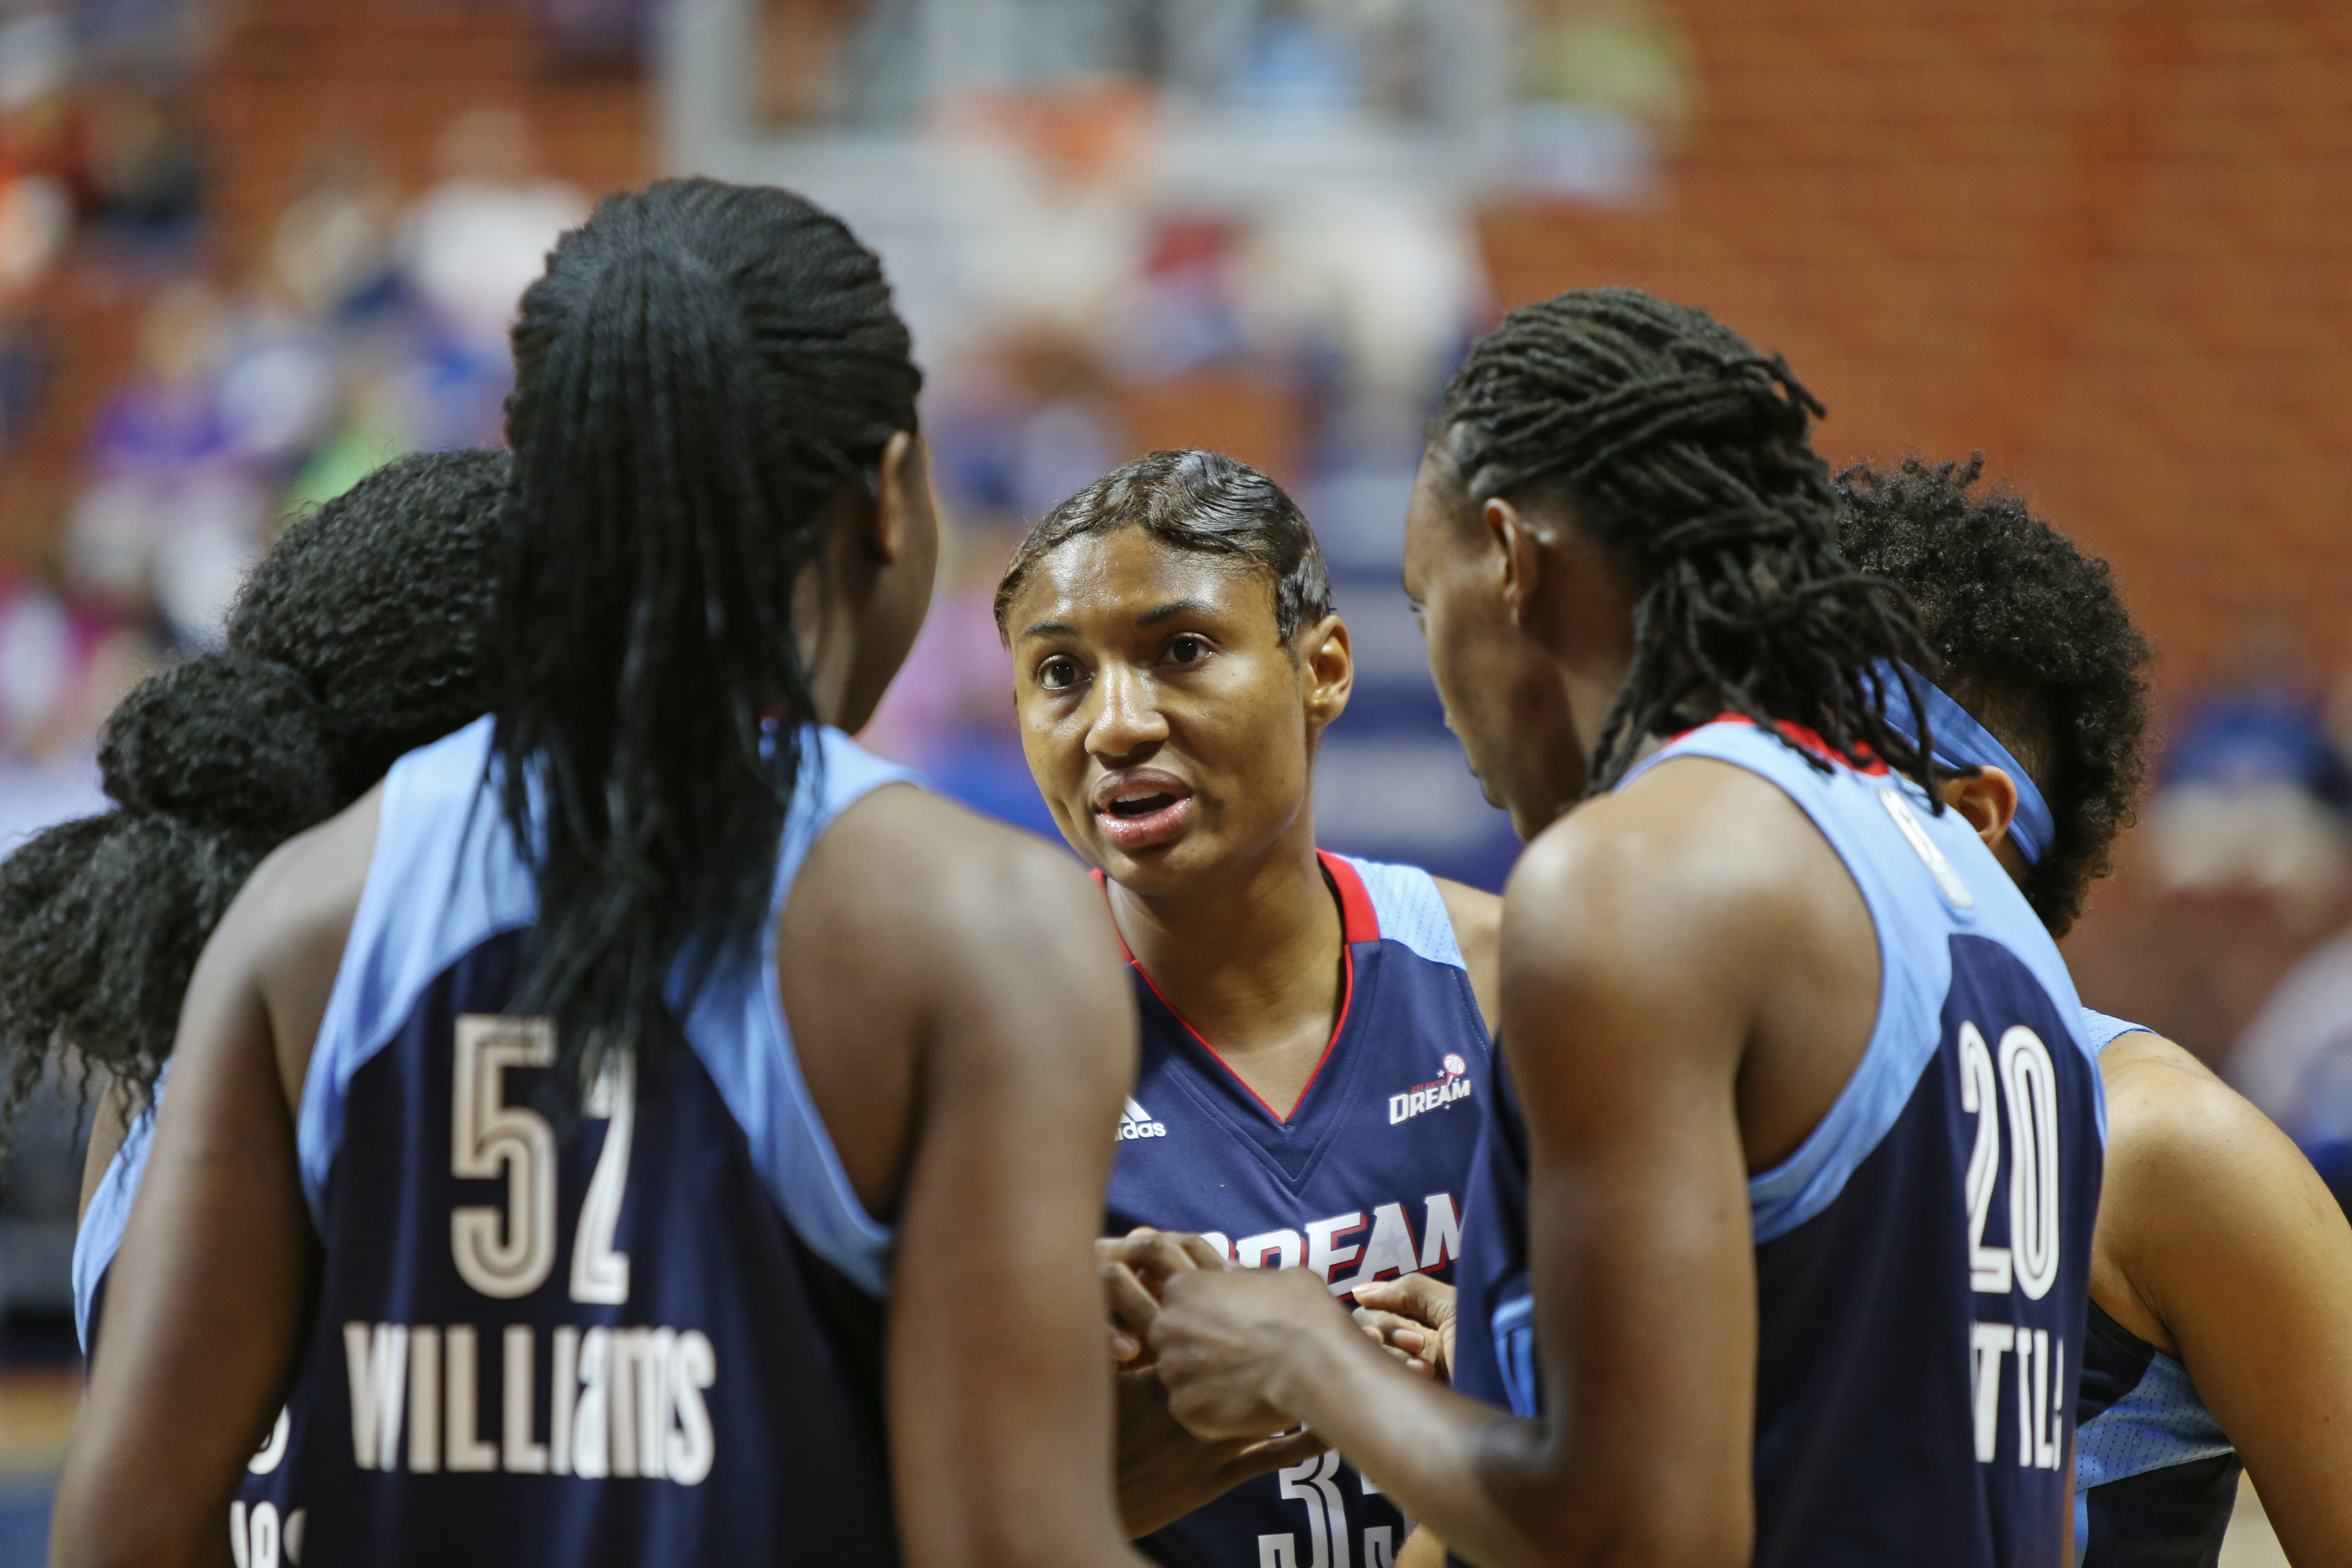 UNCASVILLE, CT - JUNE 3: Angel McCoughtry #35 of the Atlanta Dream and her teammates huddle during the game against the Connecticut Sun on June 3, 2016 at Mohegan Sun Arena in Uncasville, CT. NOTE TO USER: User expressly acknowledges and agrees that, by downloading and or using this Photograph, user is consenting to the terms and conditions of the Getty Images License Agreement. Mandatory Copyright Notice: Copyright 2016 NBAE (Photo by Chris Marion/NBAE via Getty Images)